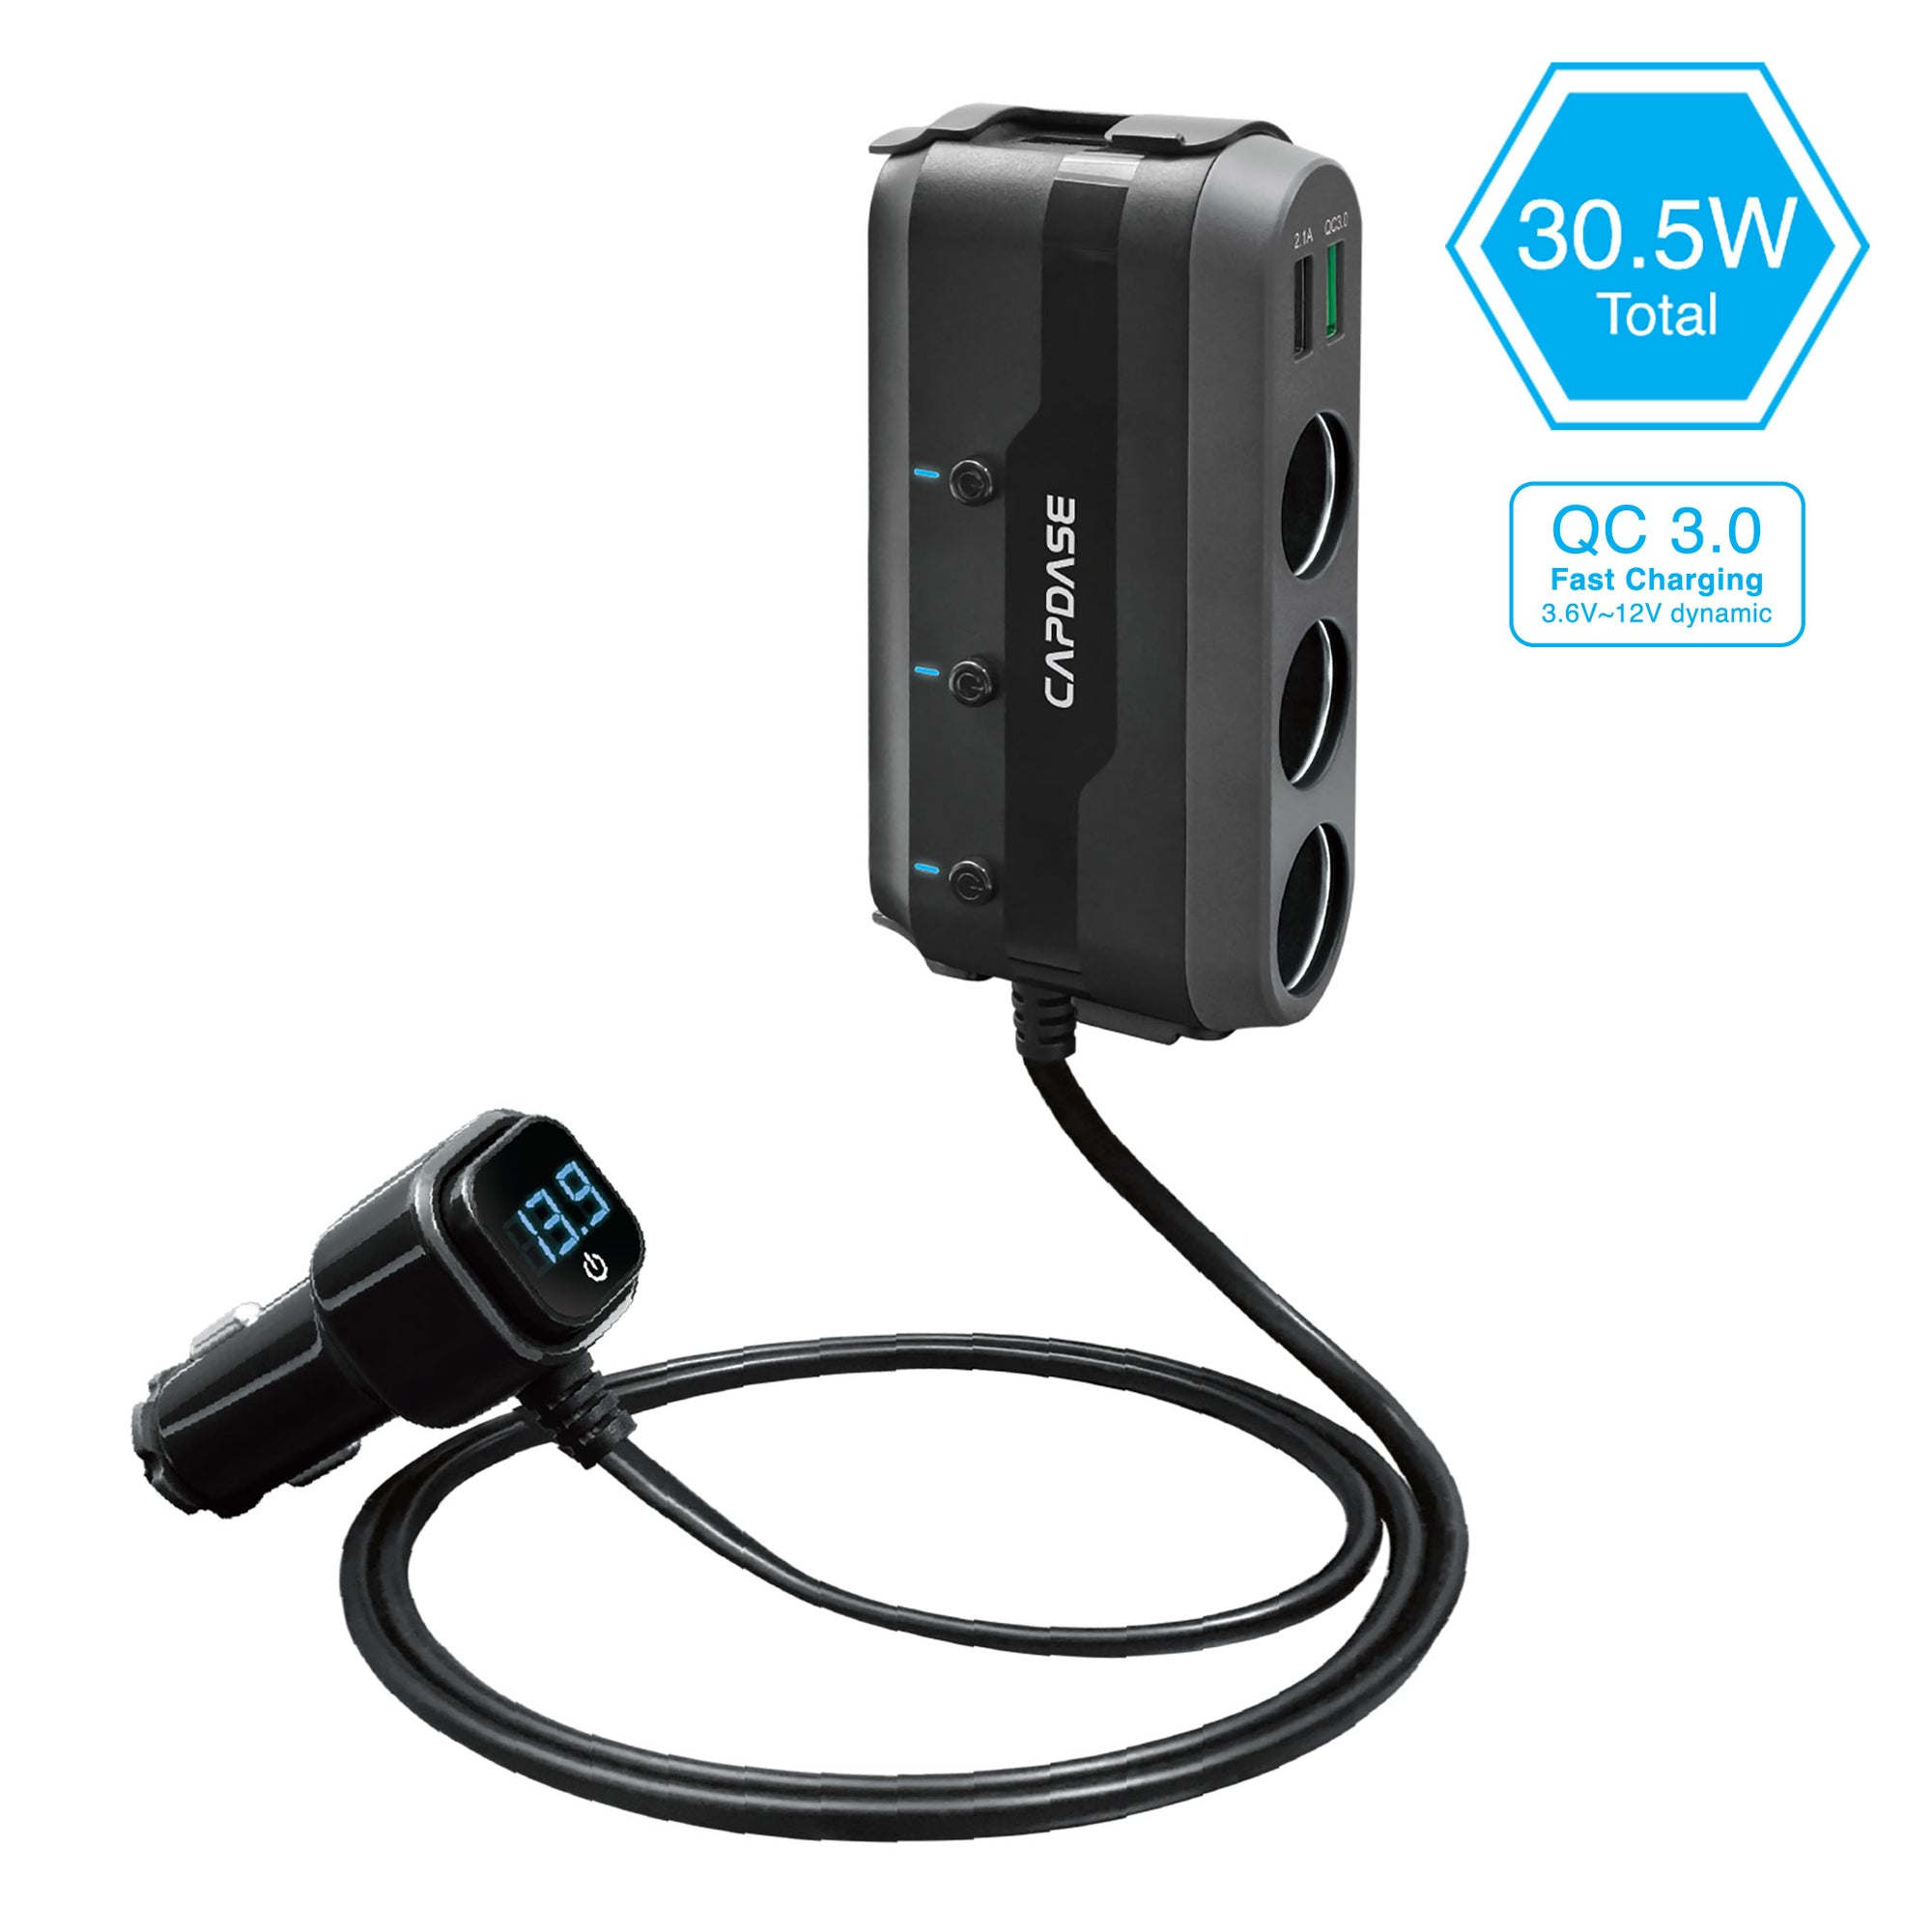 POWERHUB BQ3 3-Socket and 3-USB QC 3.0 Car Charger